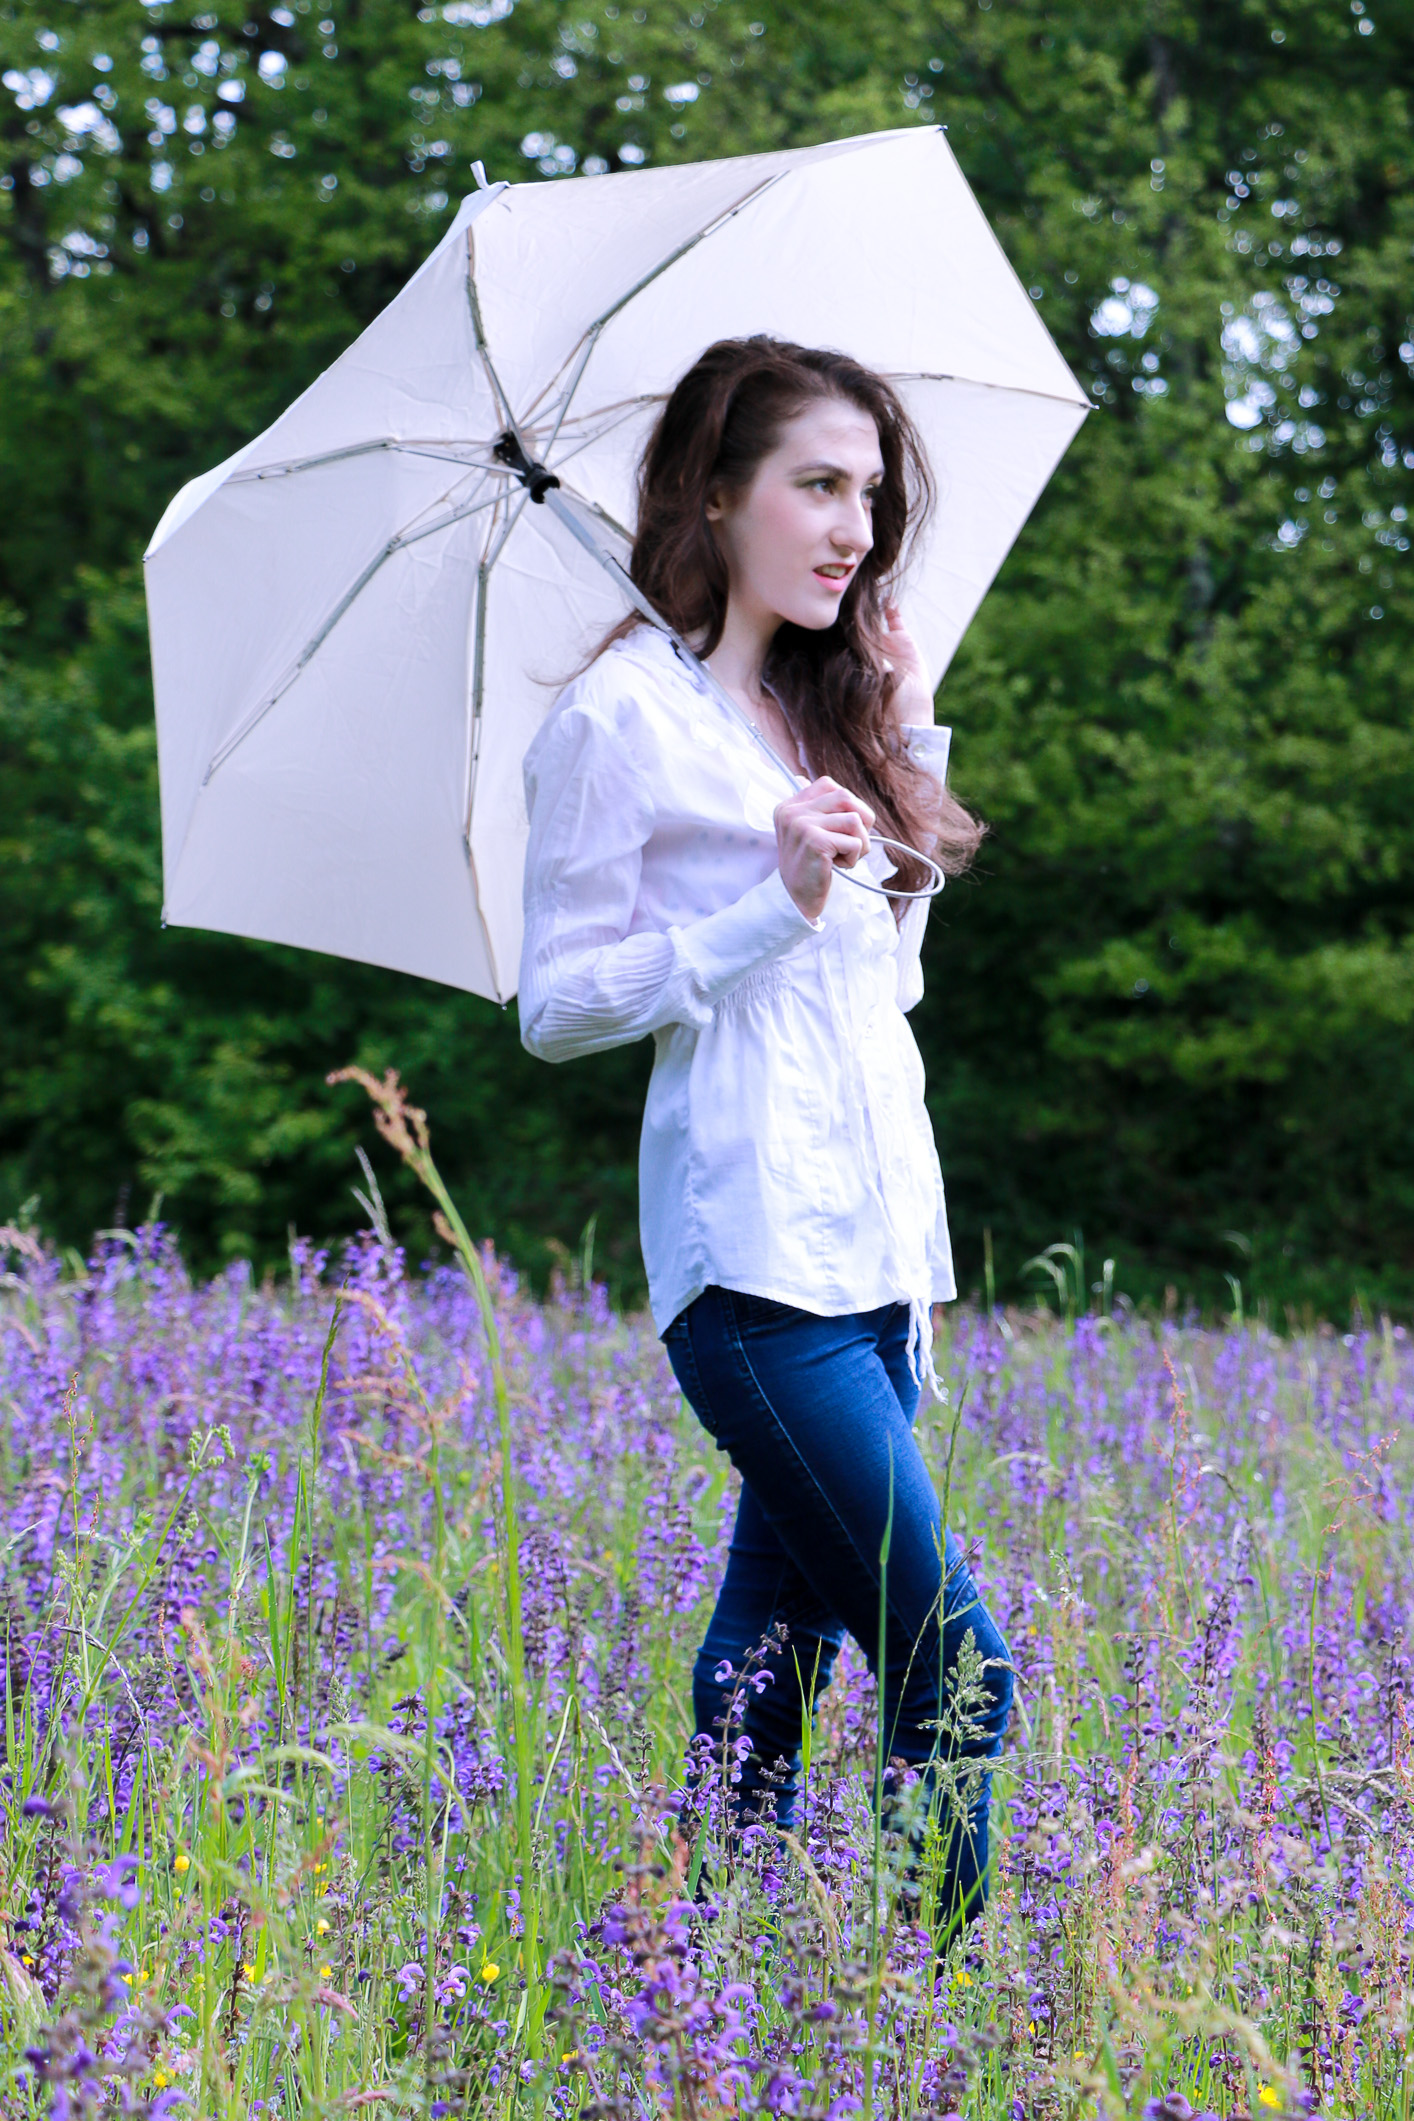 Fashion blogger Veronika Lipar of Brunette From Wall Street staring in makeup story Singing in the Rain walking through the clearing full of violet wildflowers in the middle of the forest